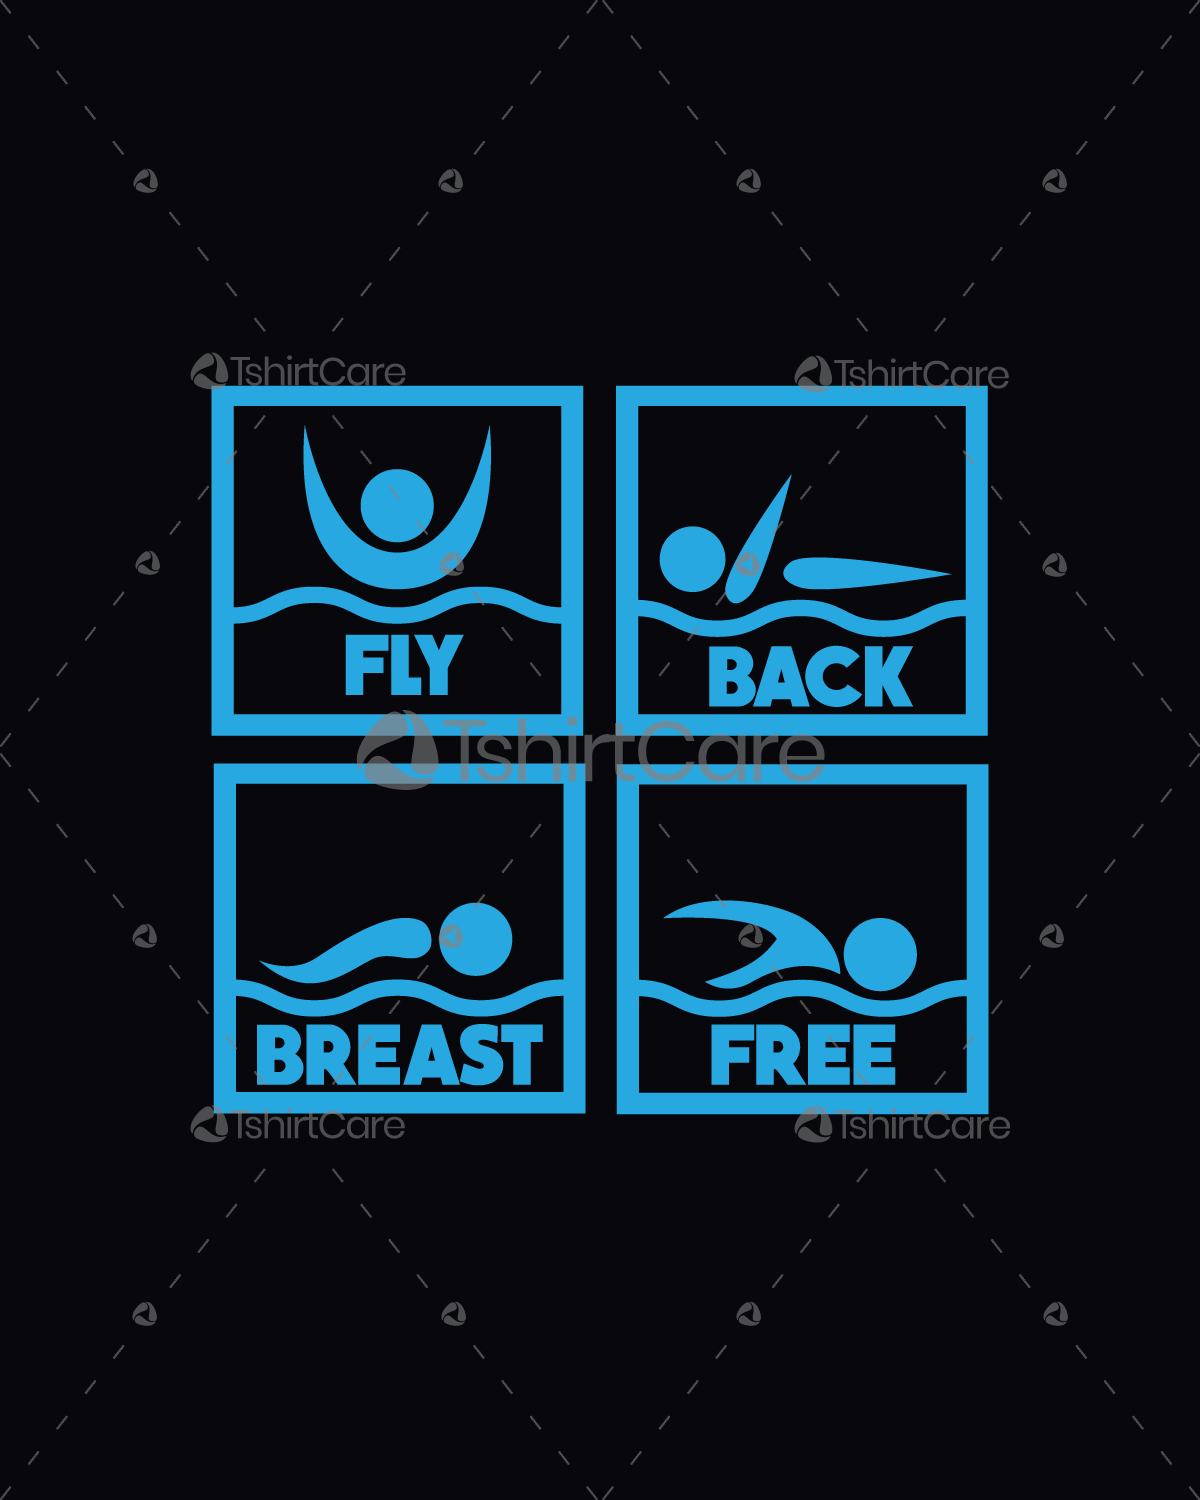 a53f3ff6 Fly back breast free Swimming T Shirt Design For Youths, Women's & Men's Funny  Swimmer Tee Shirts Gift - TshirtCare